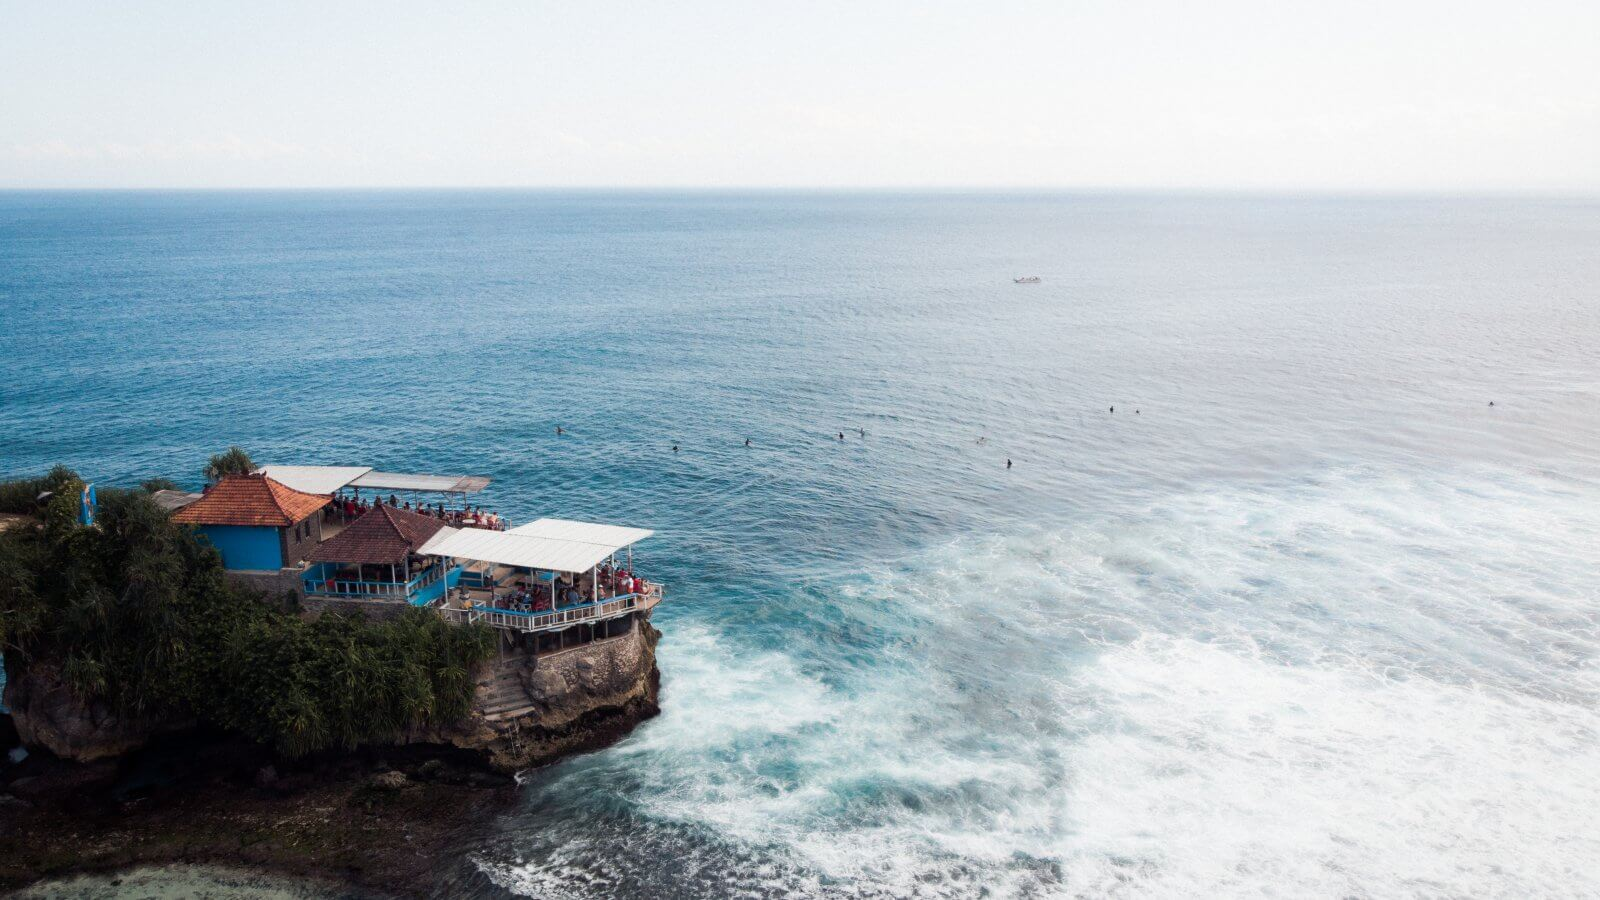 Best beaches in Bali to surf